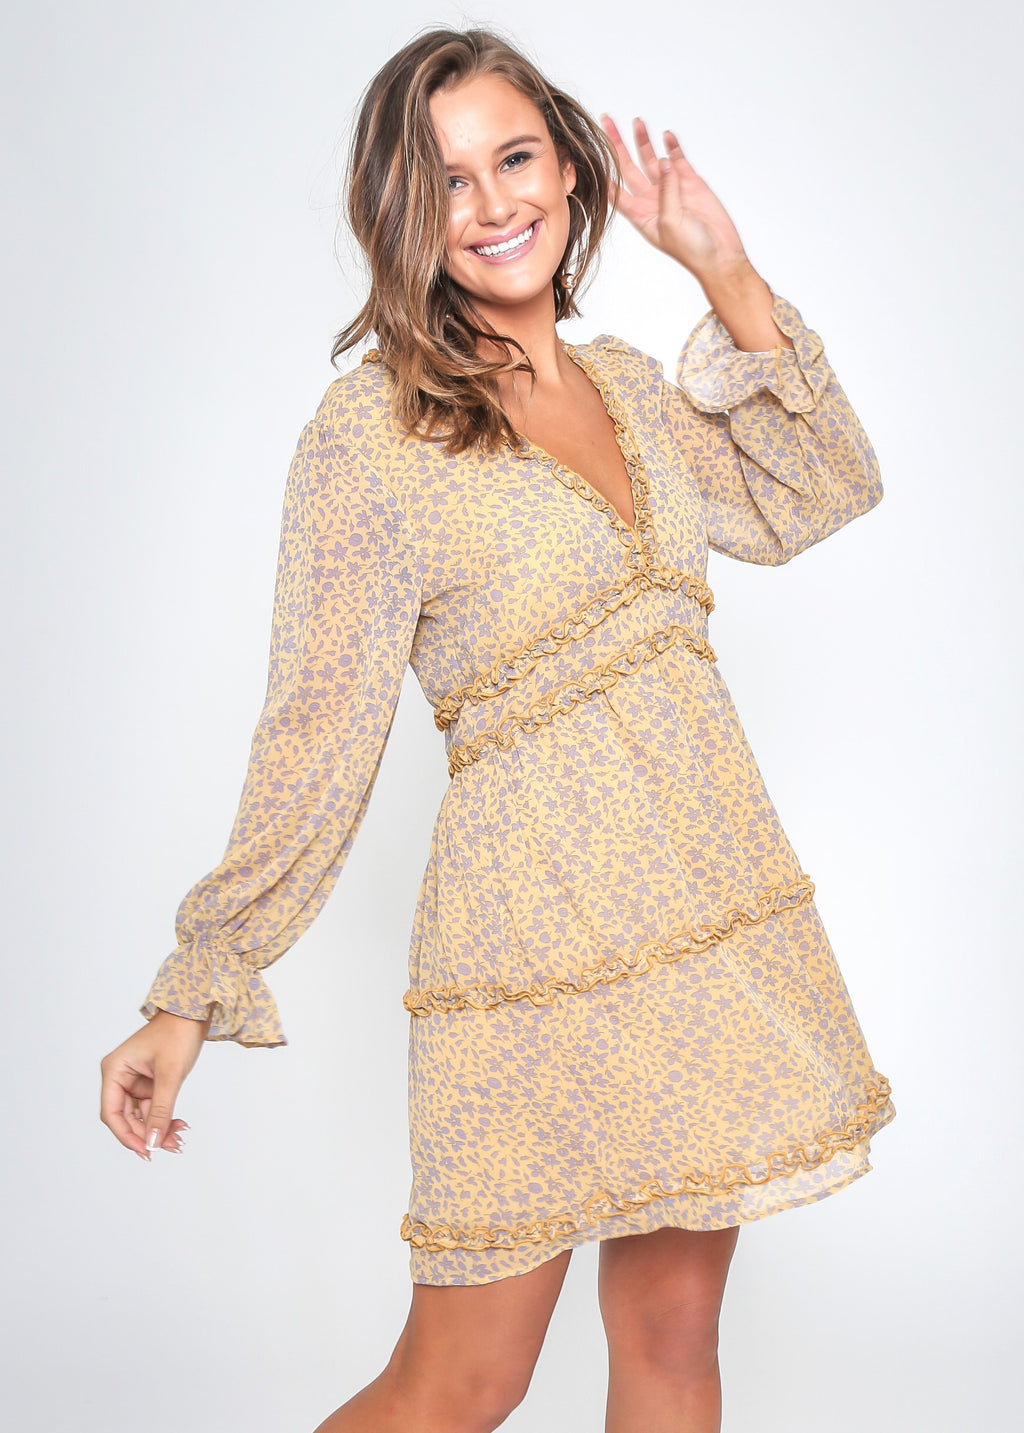 BONNIE DRESS - GOLDEN FLORAL